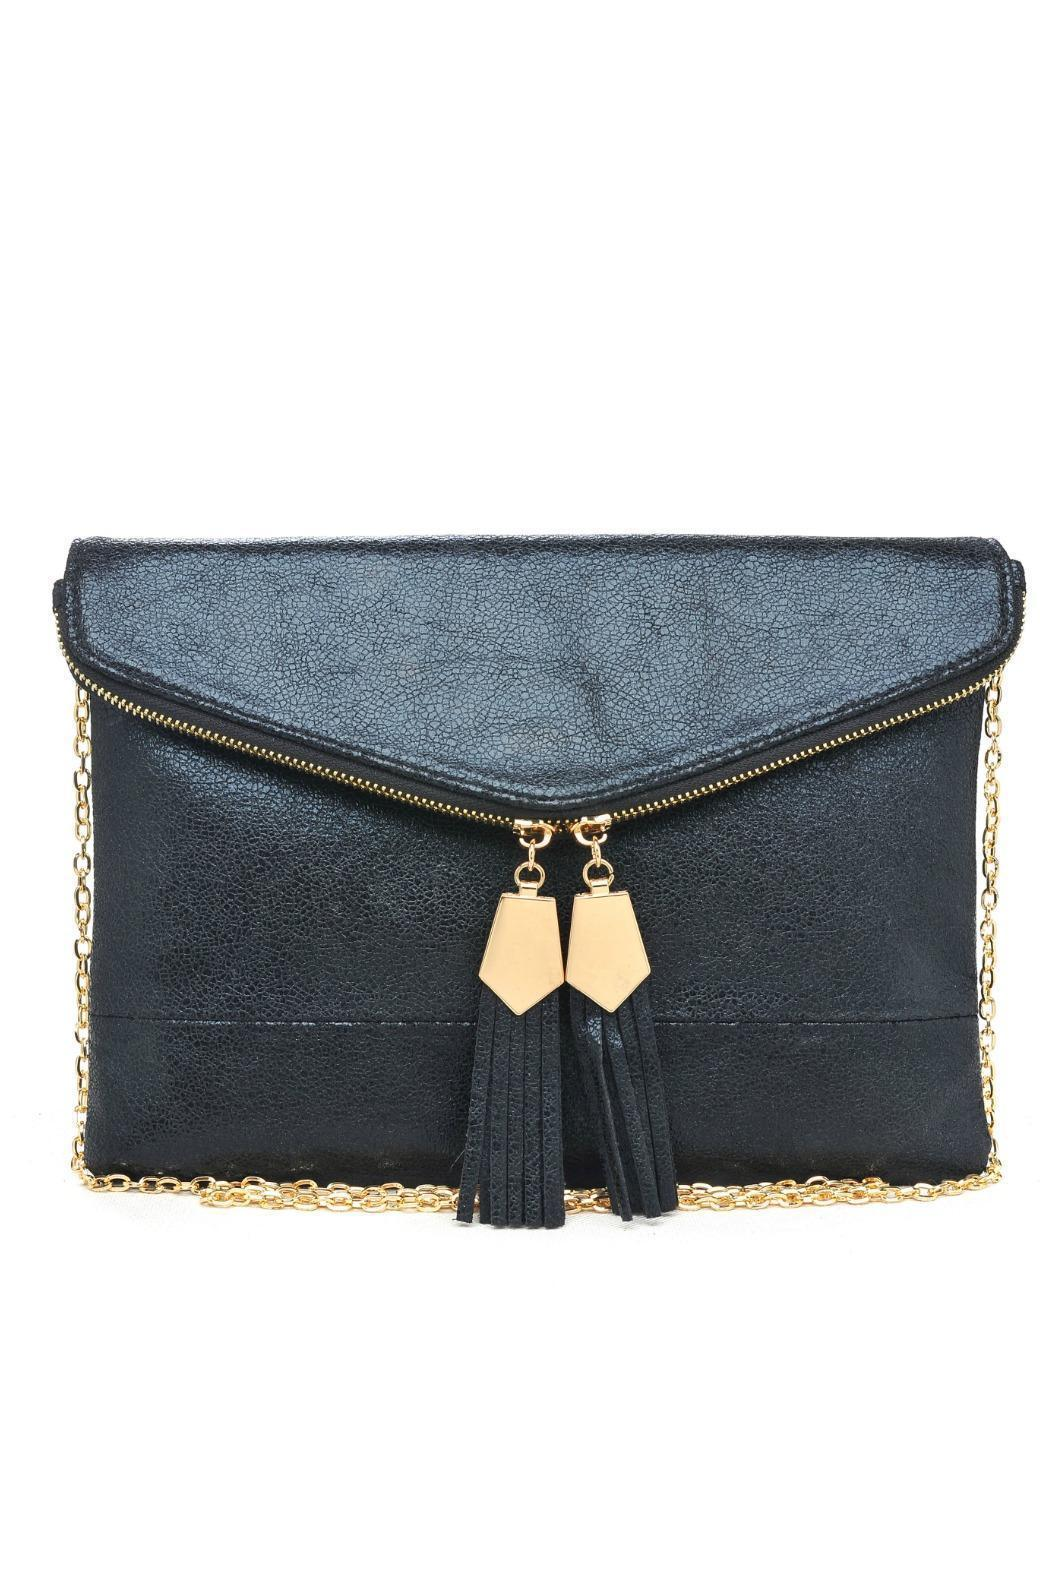 Urban Expressions Brooklyn Envelope Clutch - Front Cropped Image